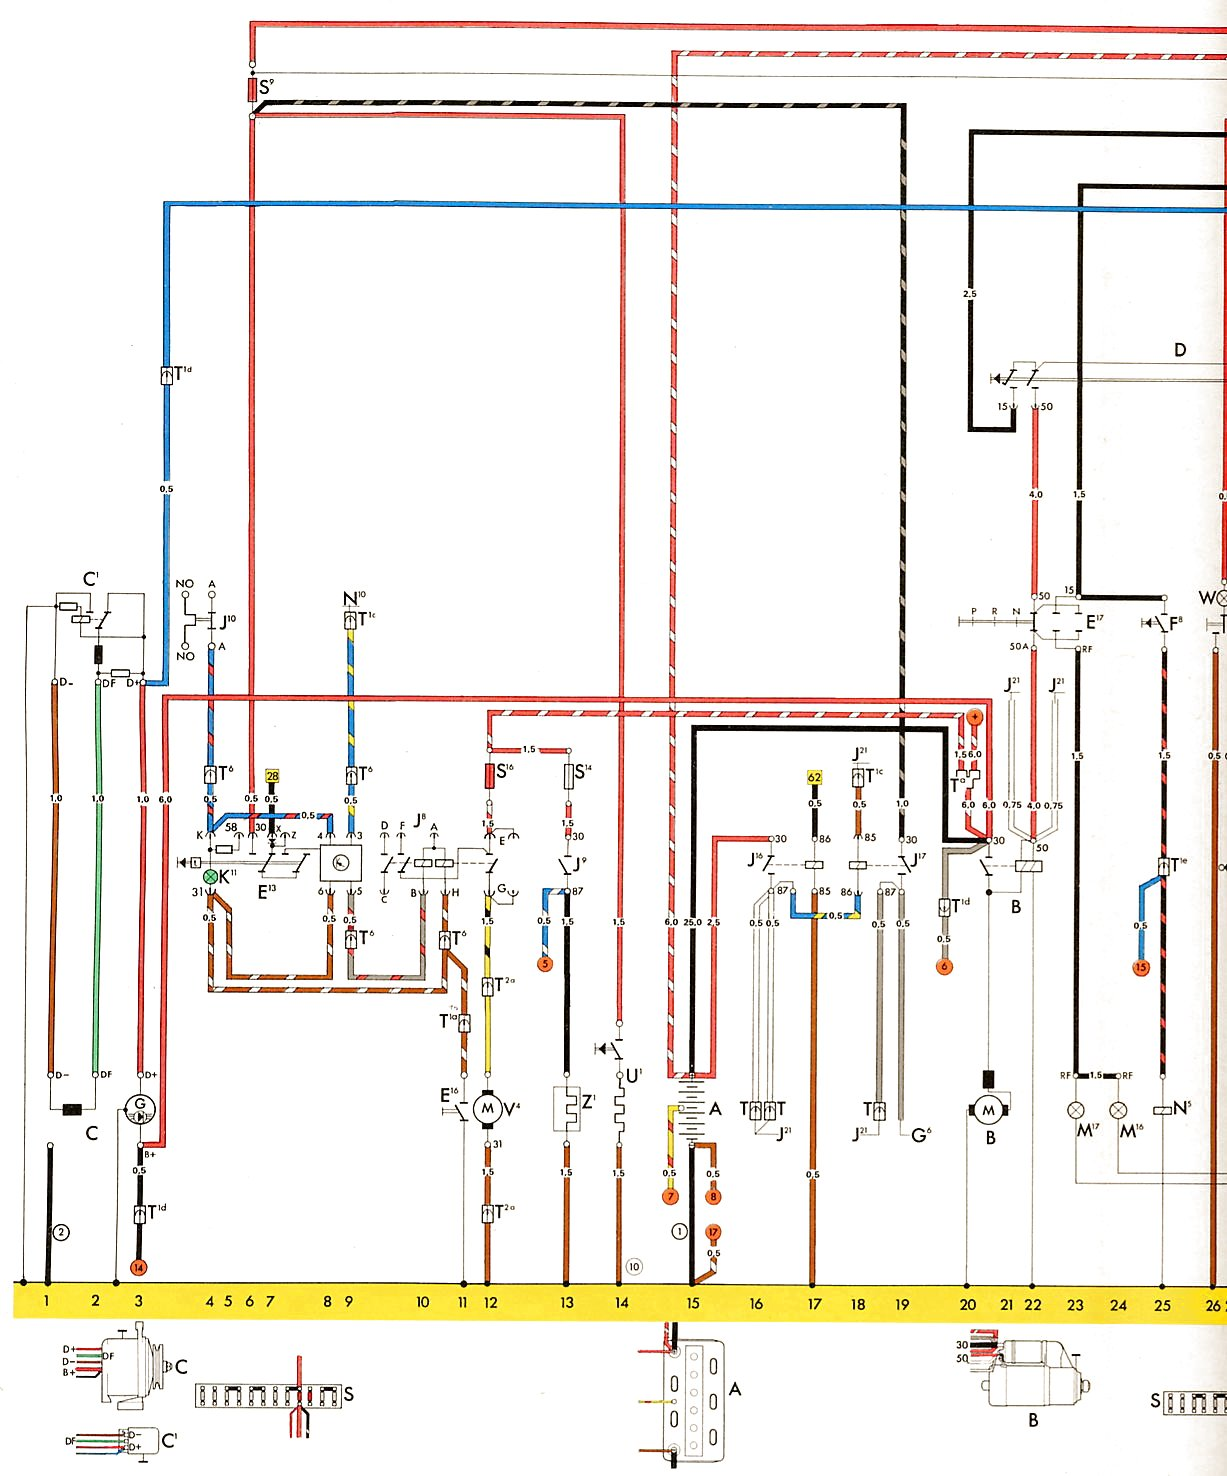 412 Heater Timer Switch Wiring Diagram